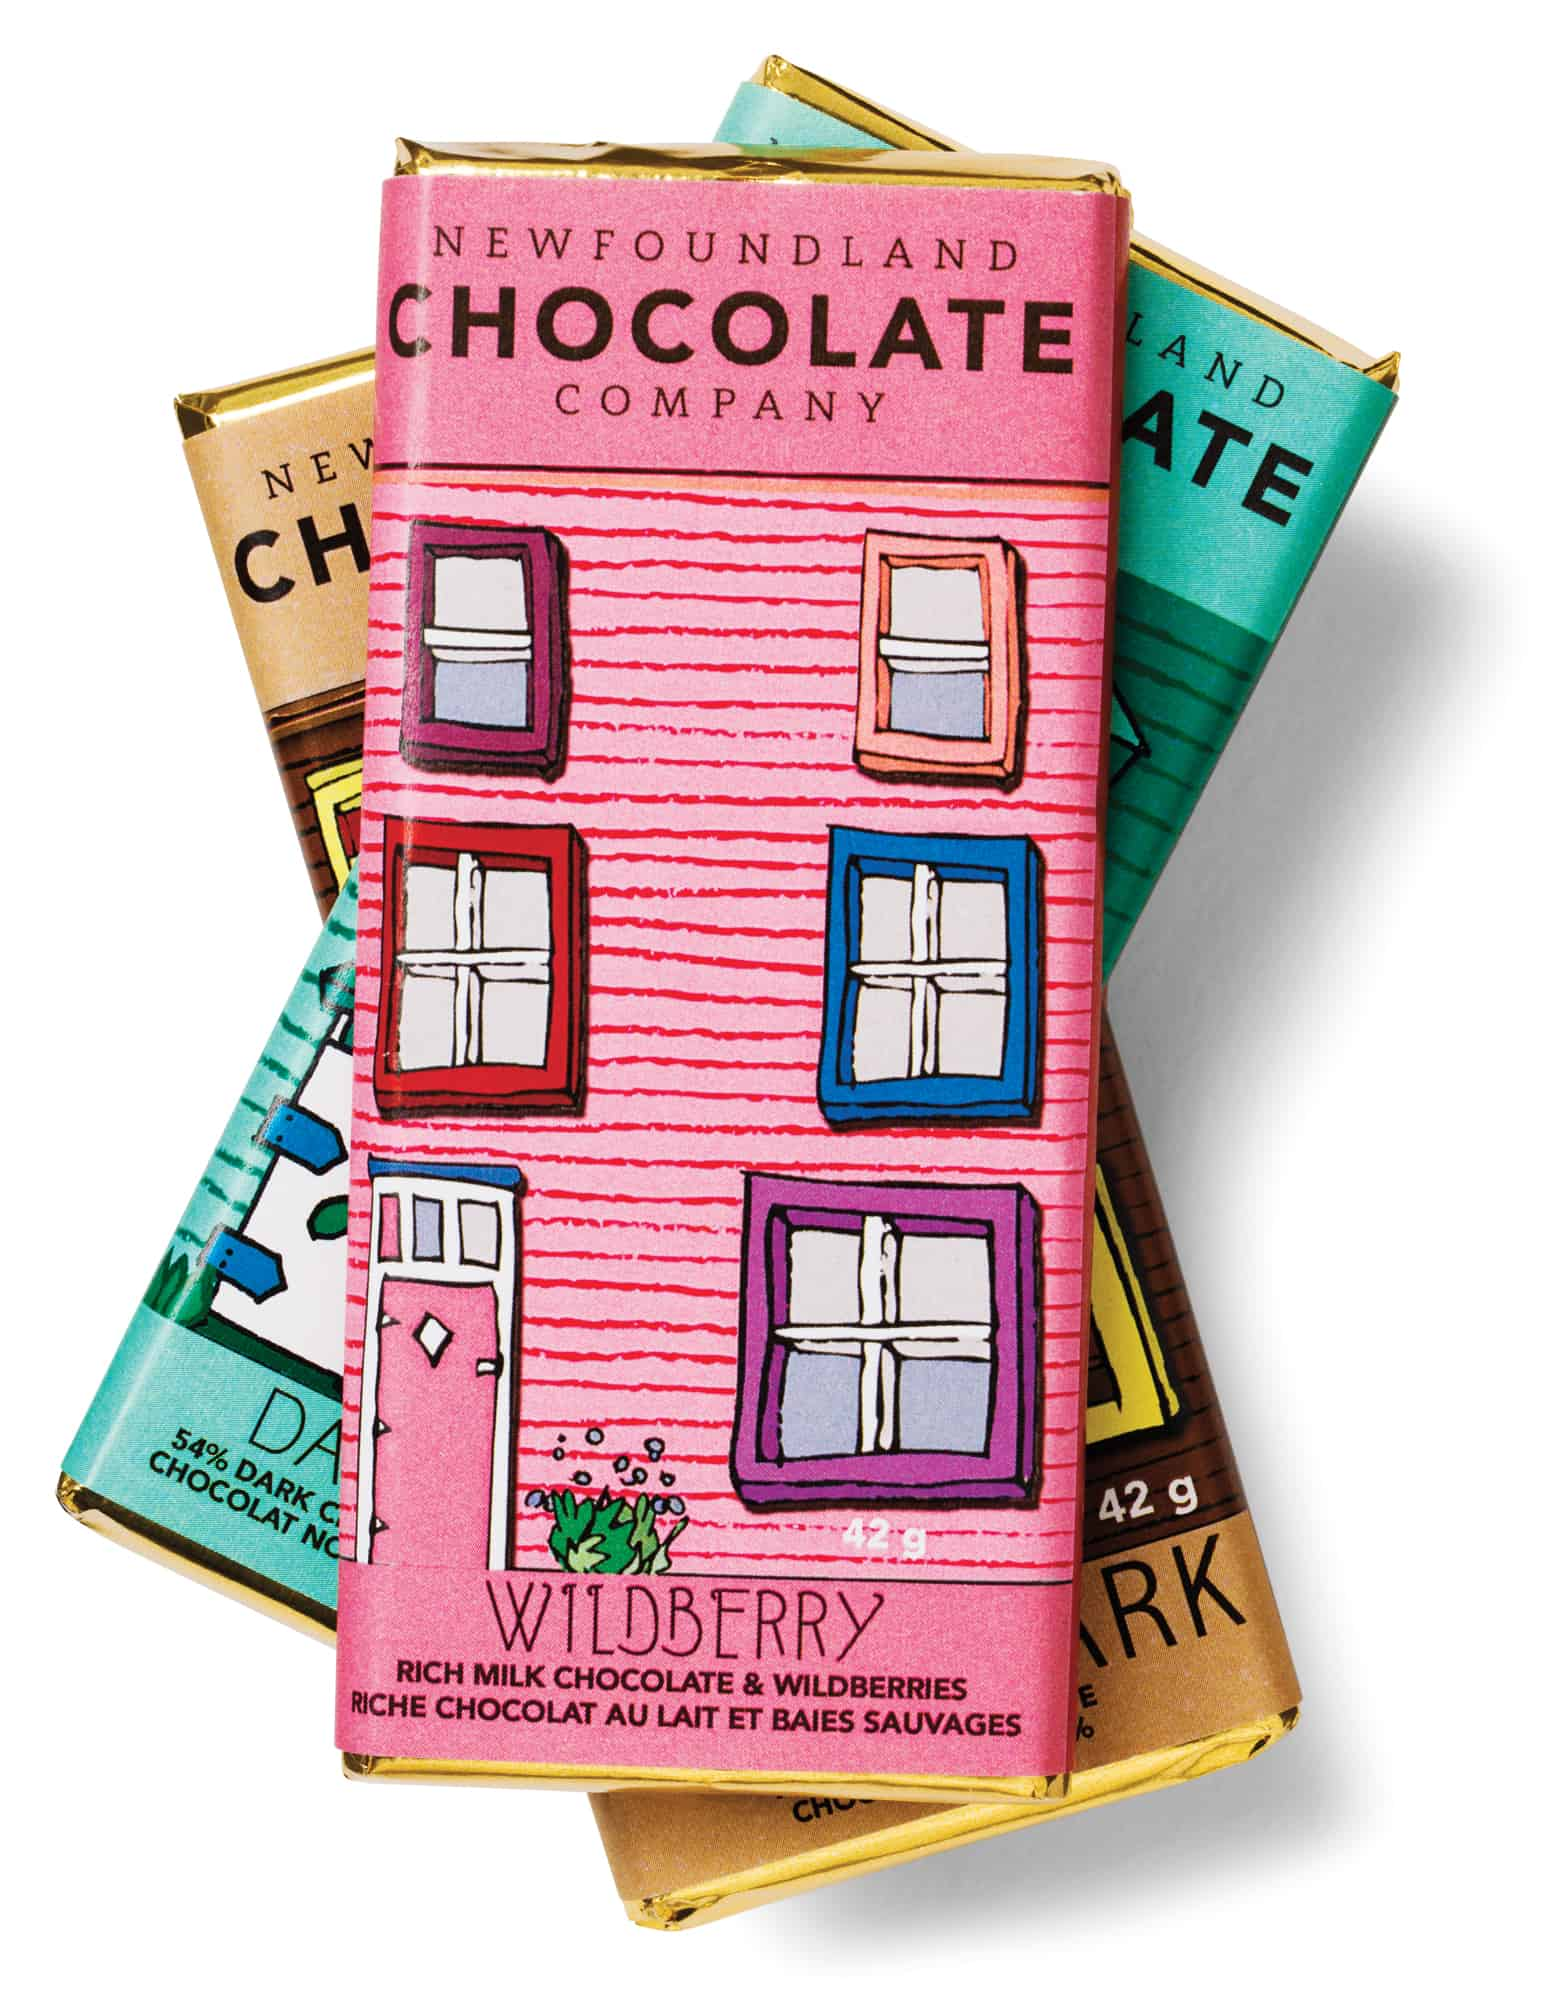 Row house chocolate bars $4.25 each by Christina Dove and Brent Smith